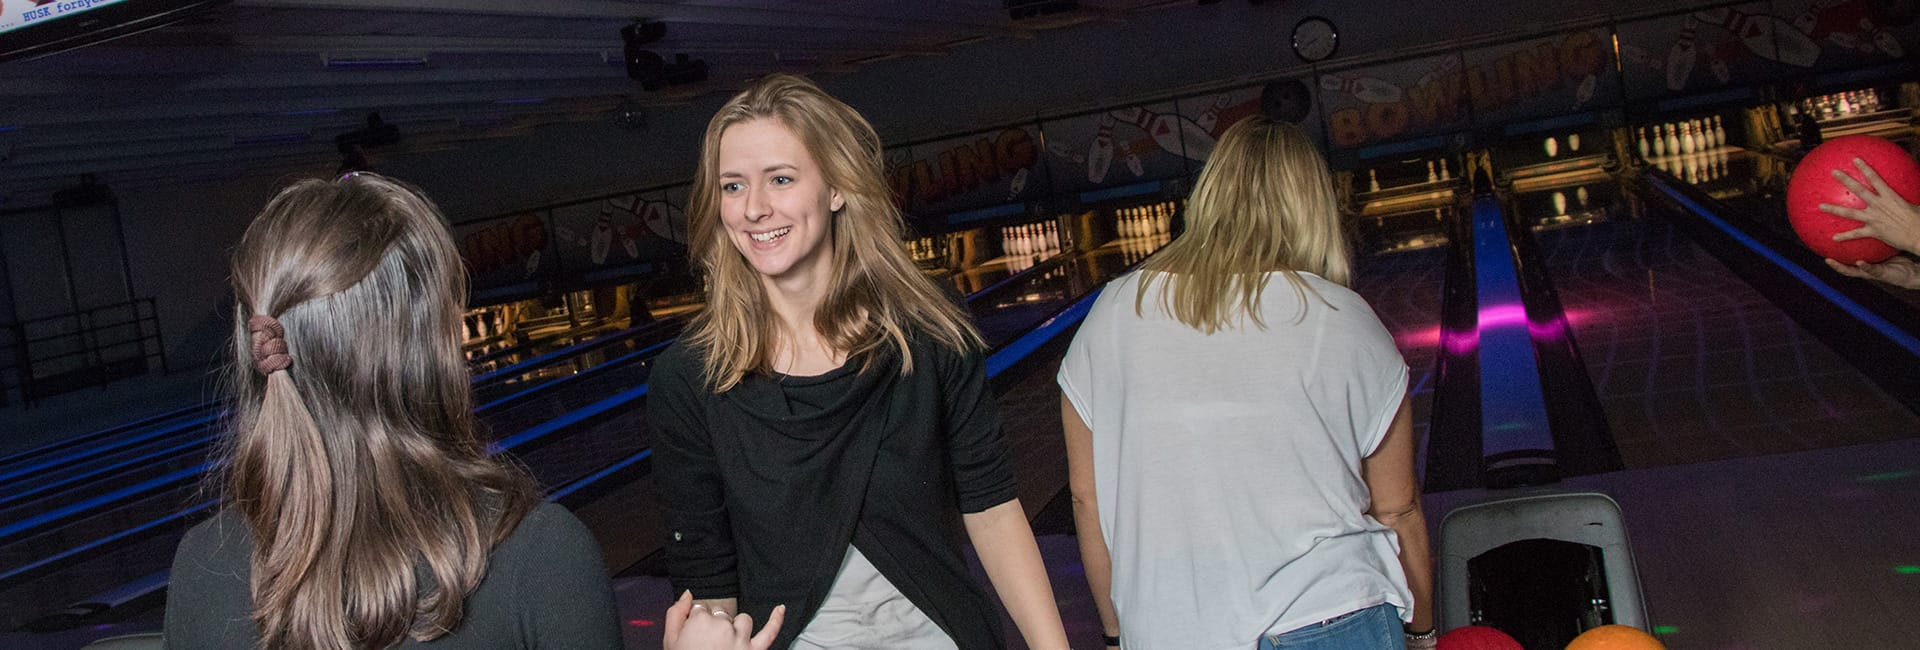 Bowling Roskilde